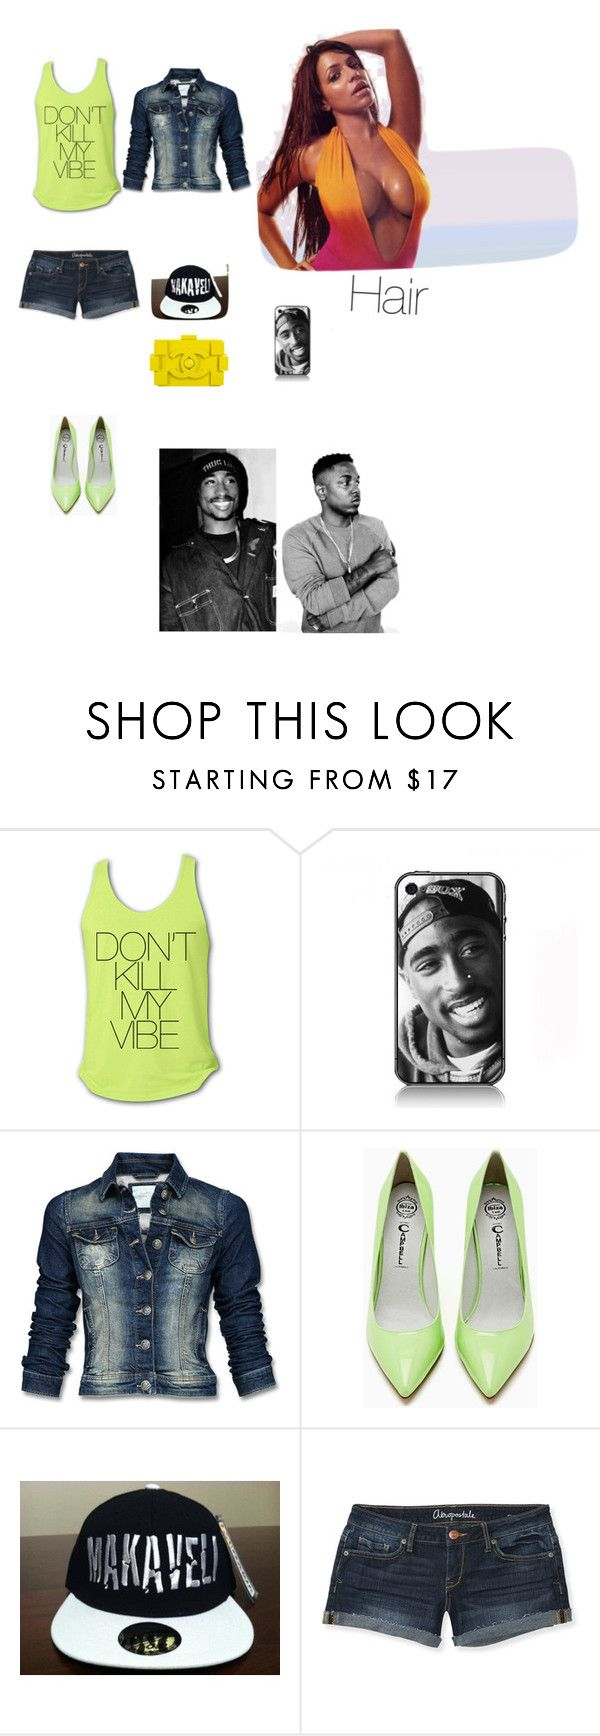 """""""Lime Vibe (Vida Guerra)"""" by mafedia ❤ liked on Polyvore featuring Mexx, Jeffrey Campbell, Chanel and Aéropostale"""